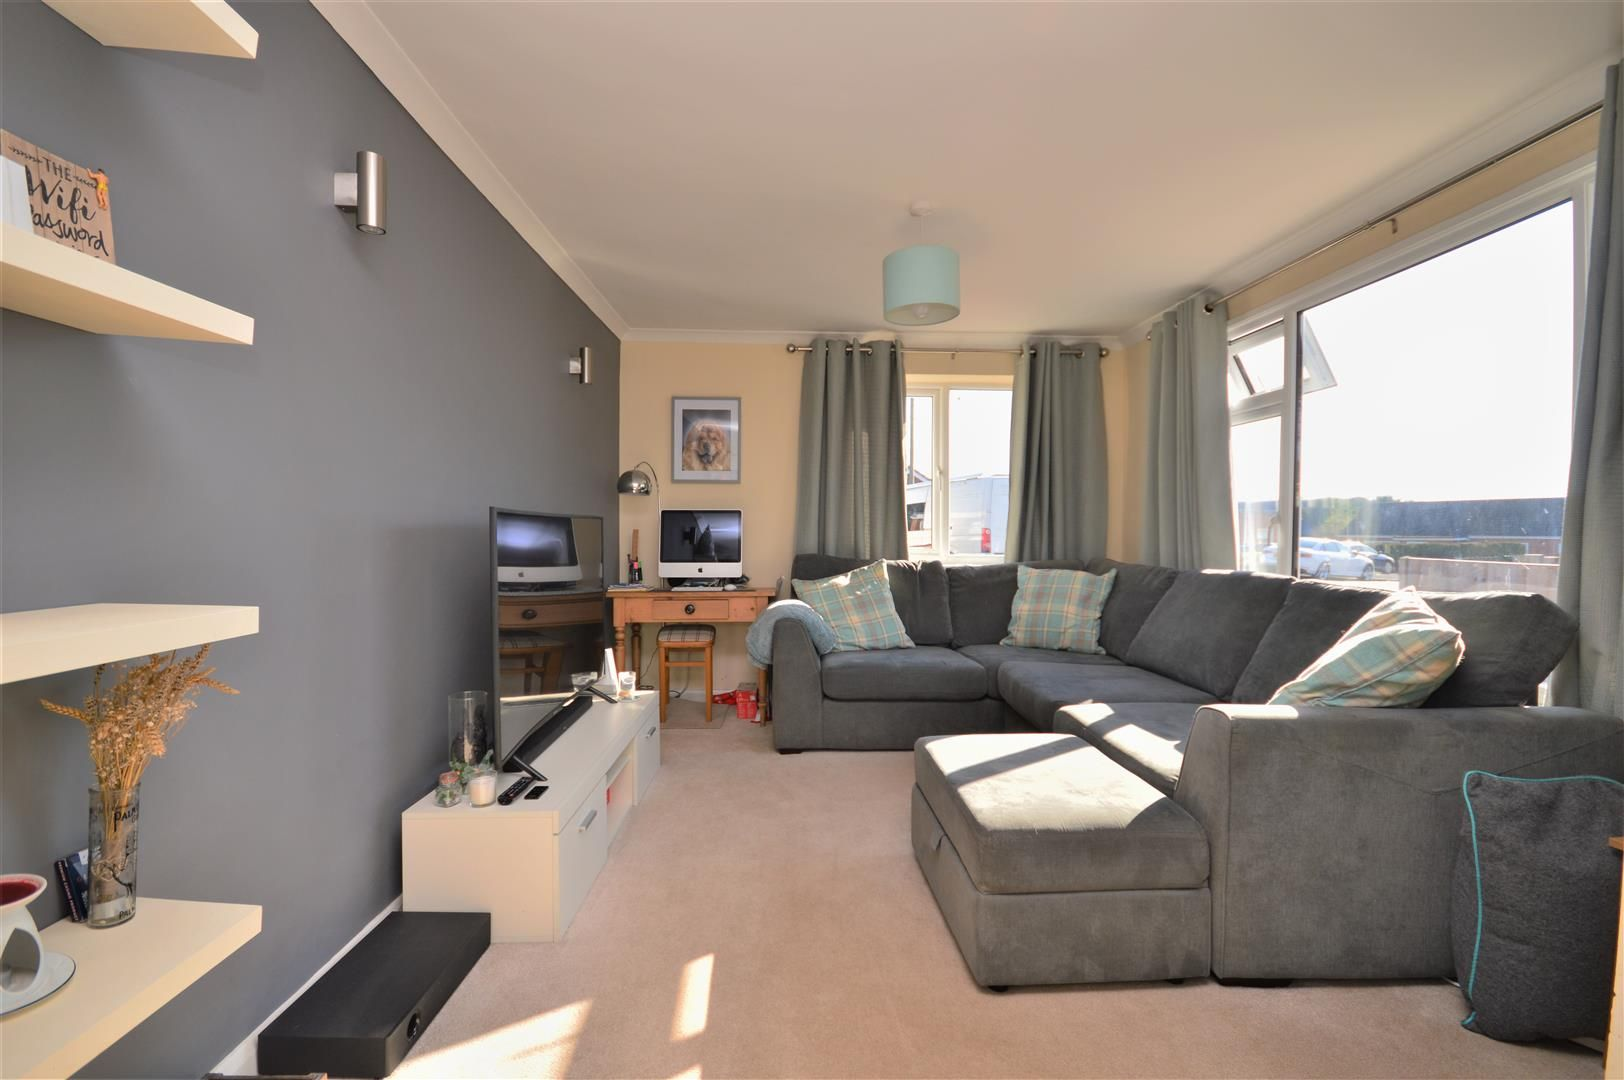 2 bed semi-detached-bungalow for sale in Marden  - Property Image 2